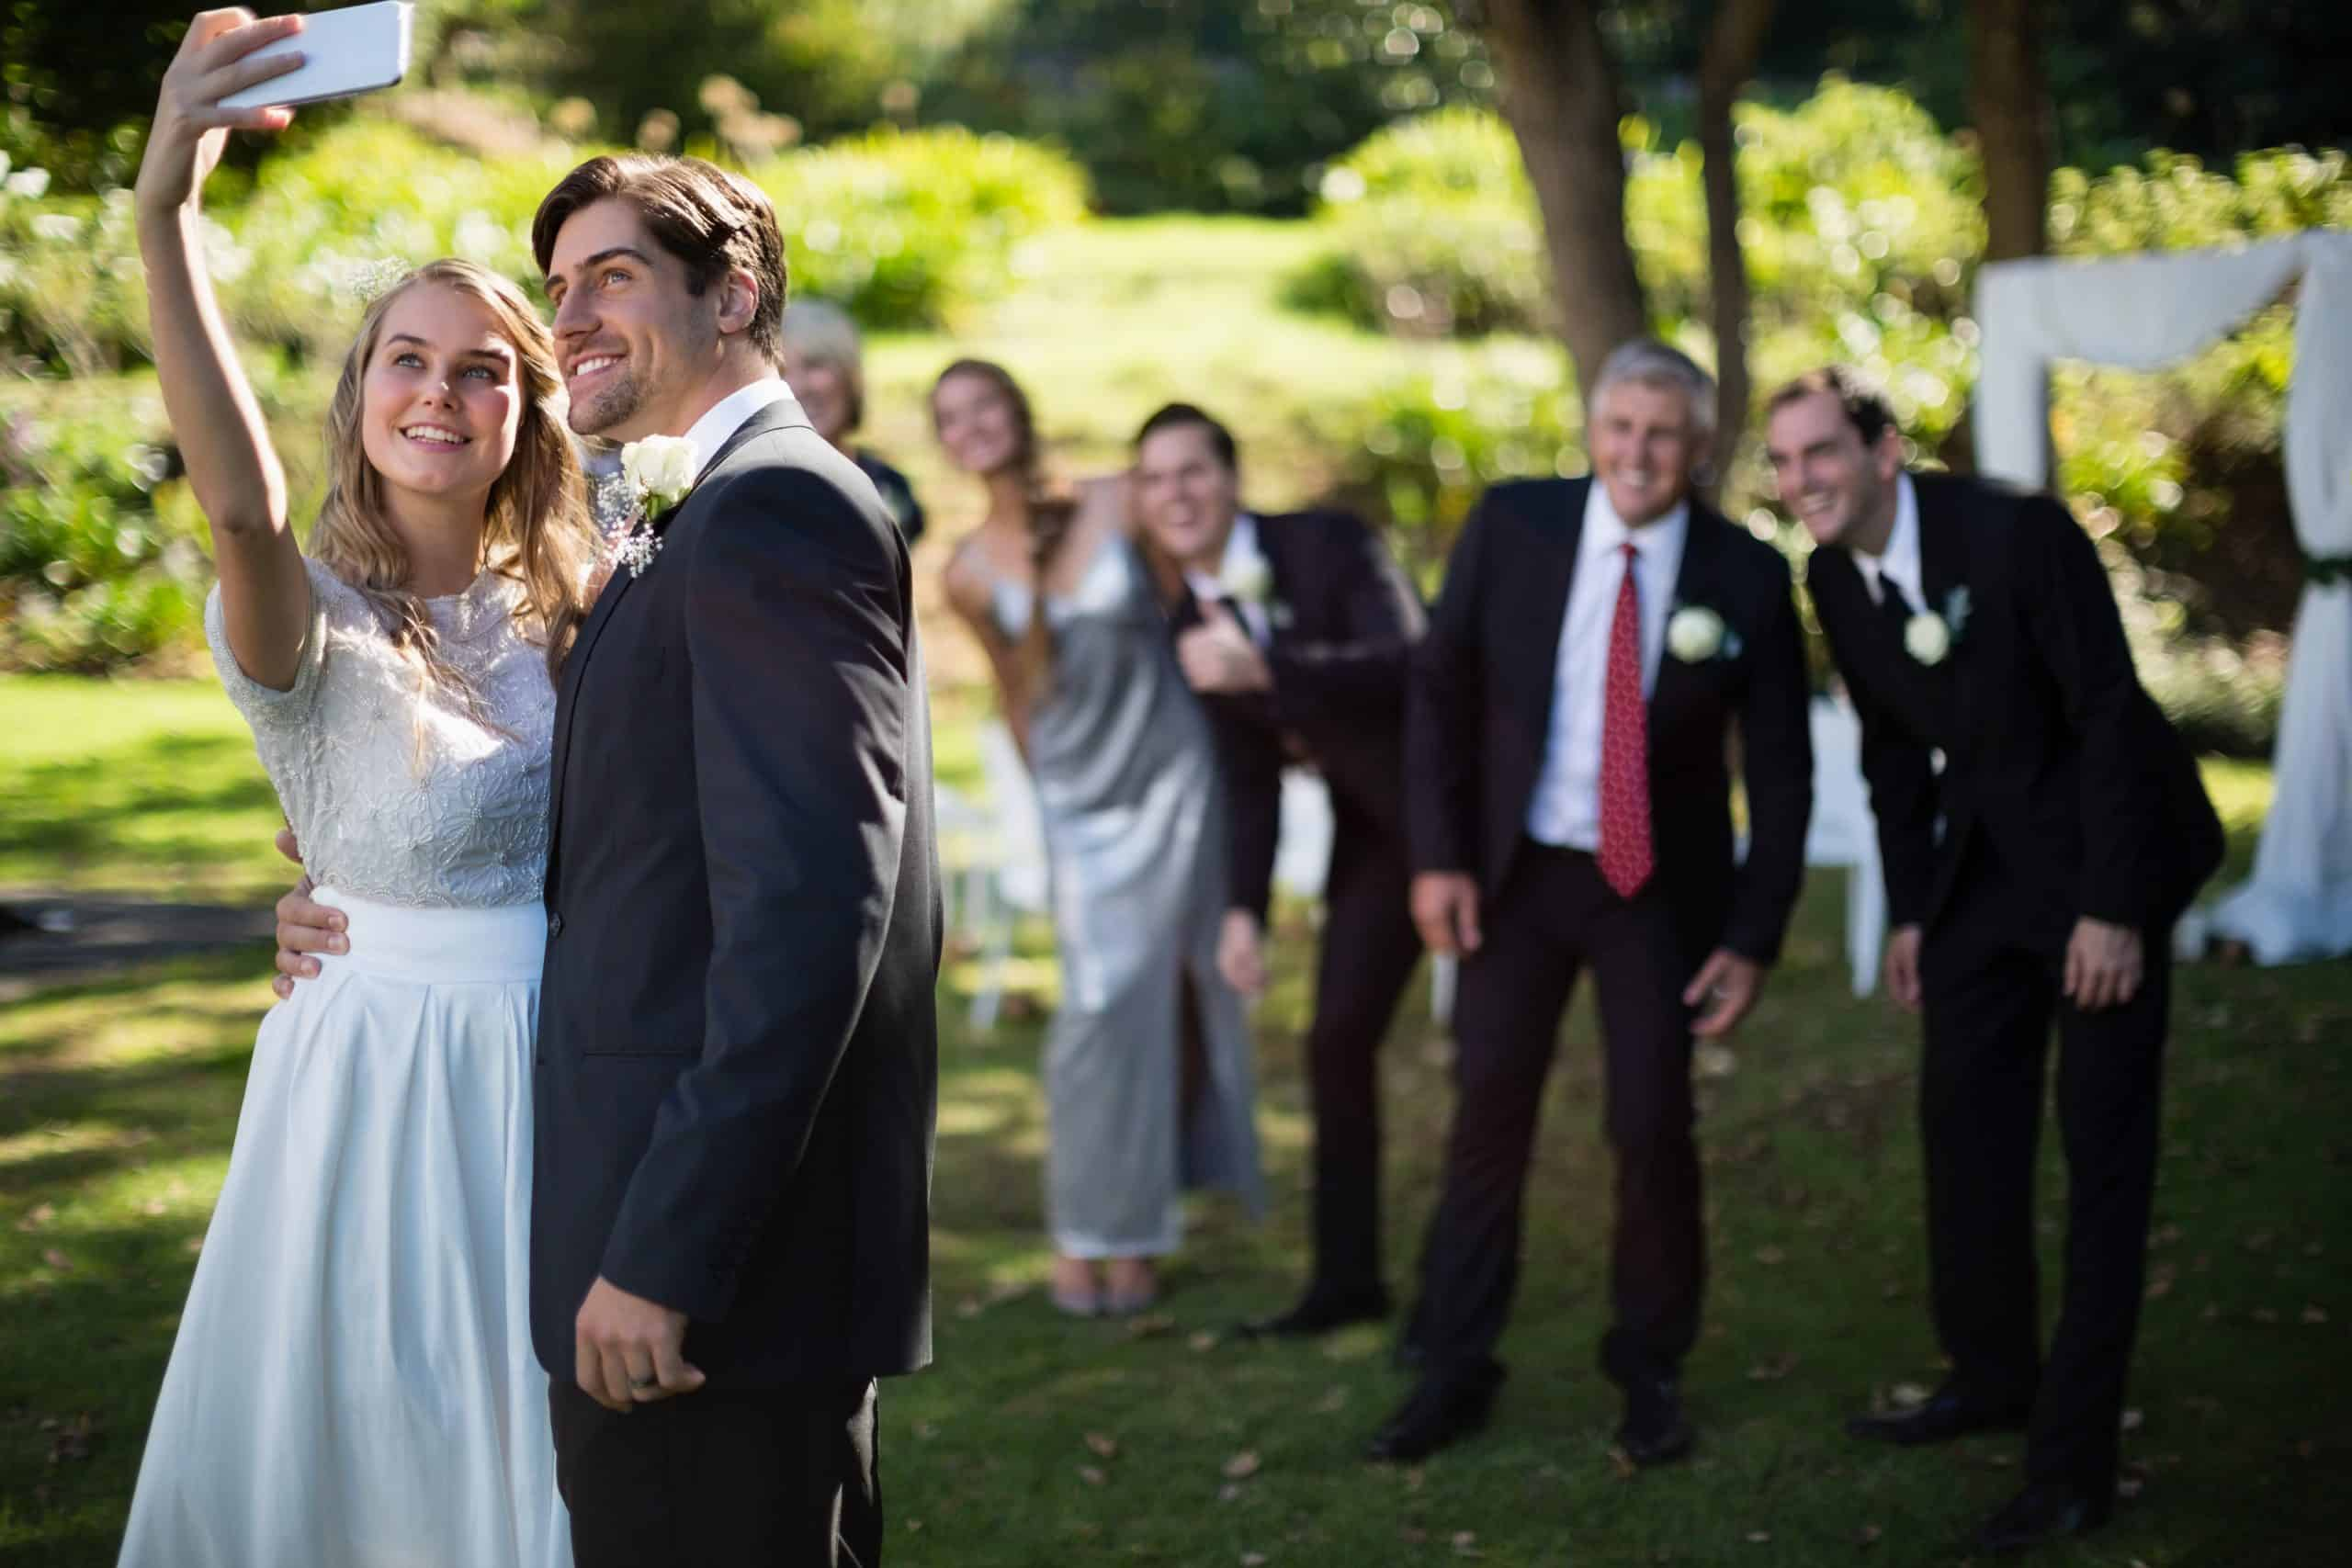 Couple taking selfie with guests during wedding in park